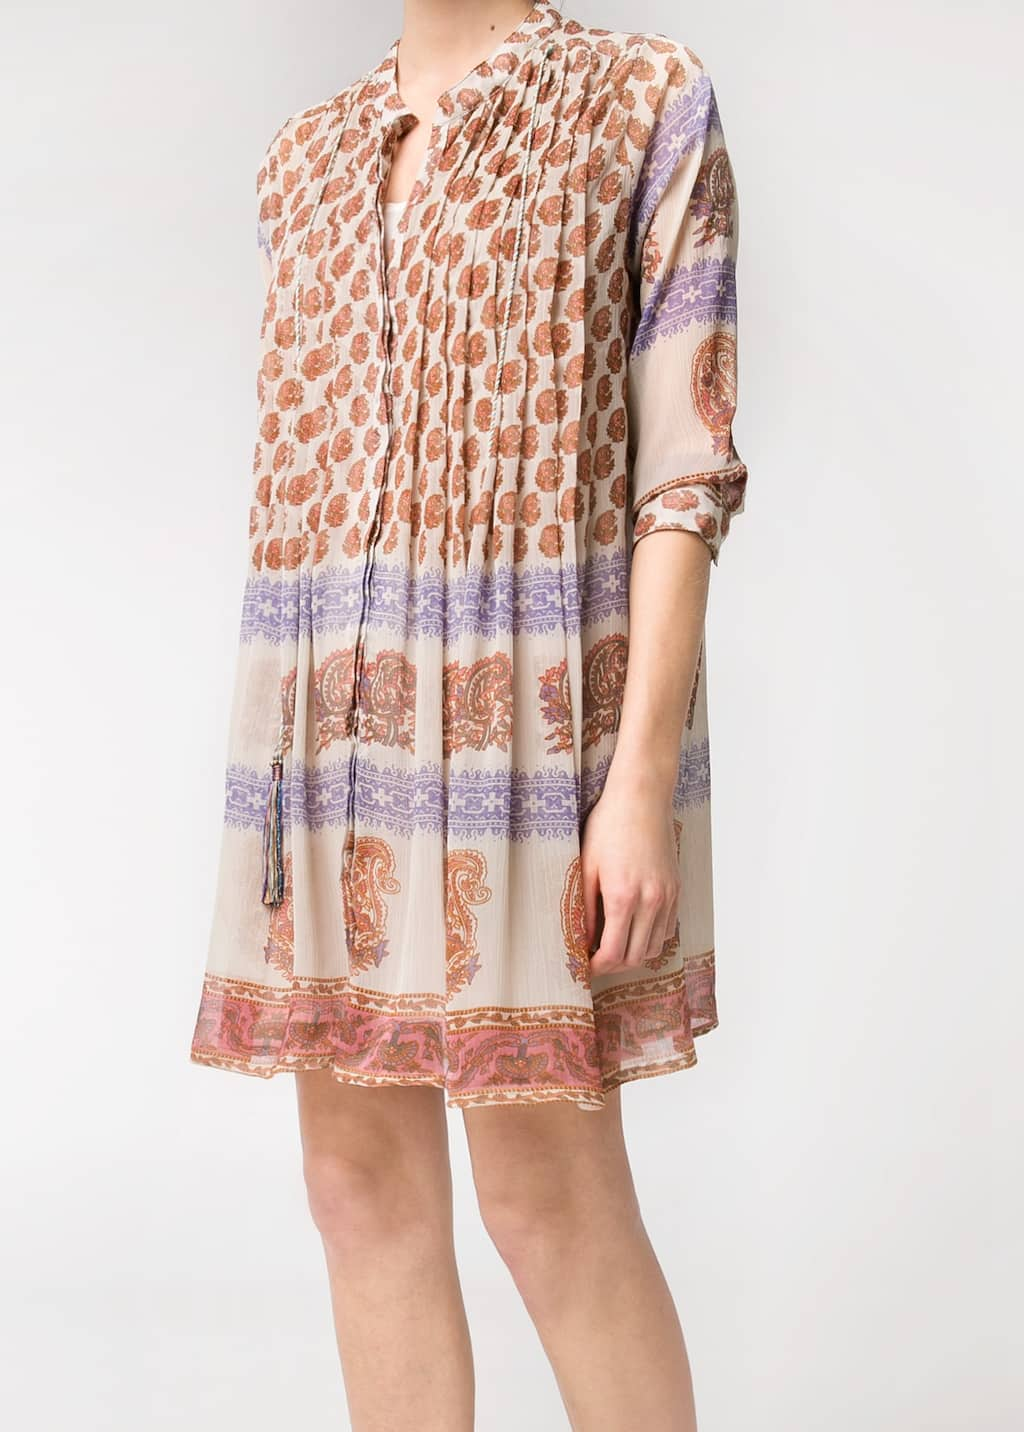 Robe Hippie Chic Femme Outlet Luxembourg